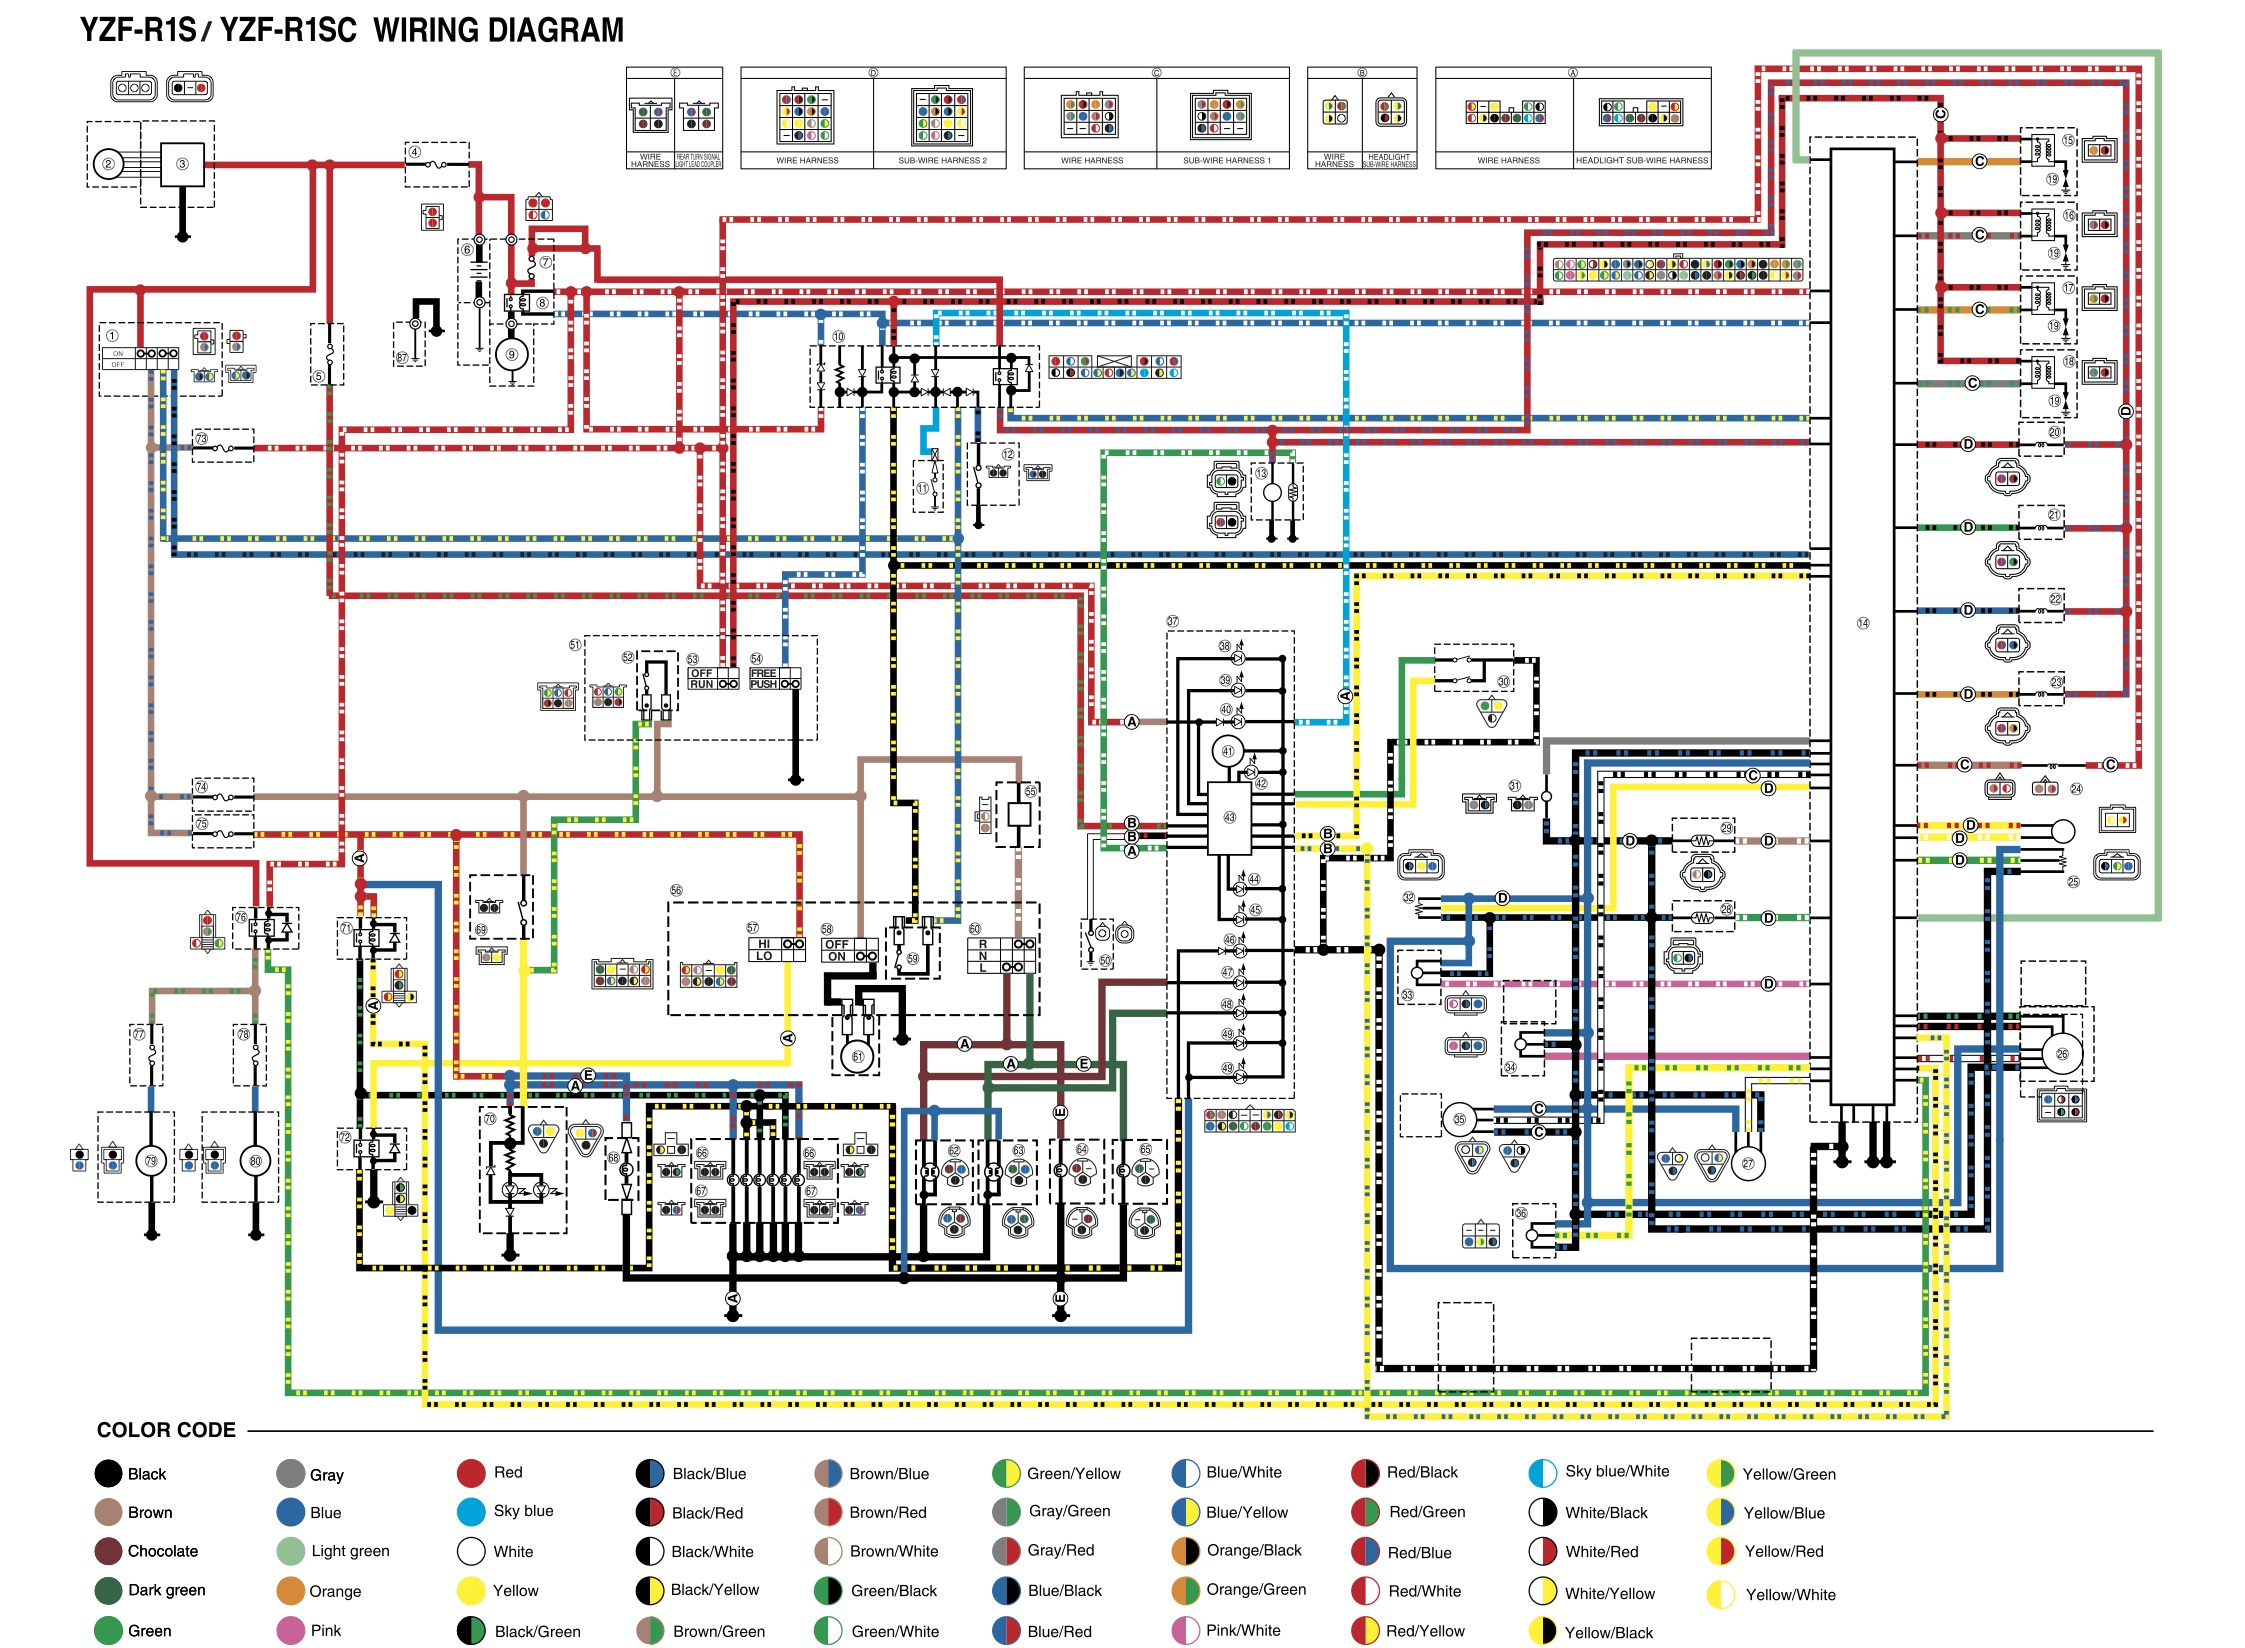 04R1_wiring_diagram r1 wiring help on 2007 yamaha r1 wiring diagram